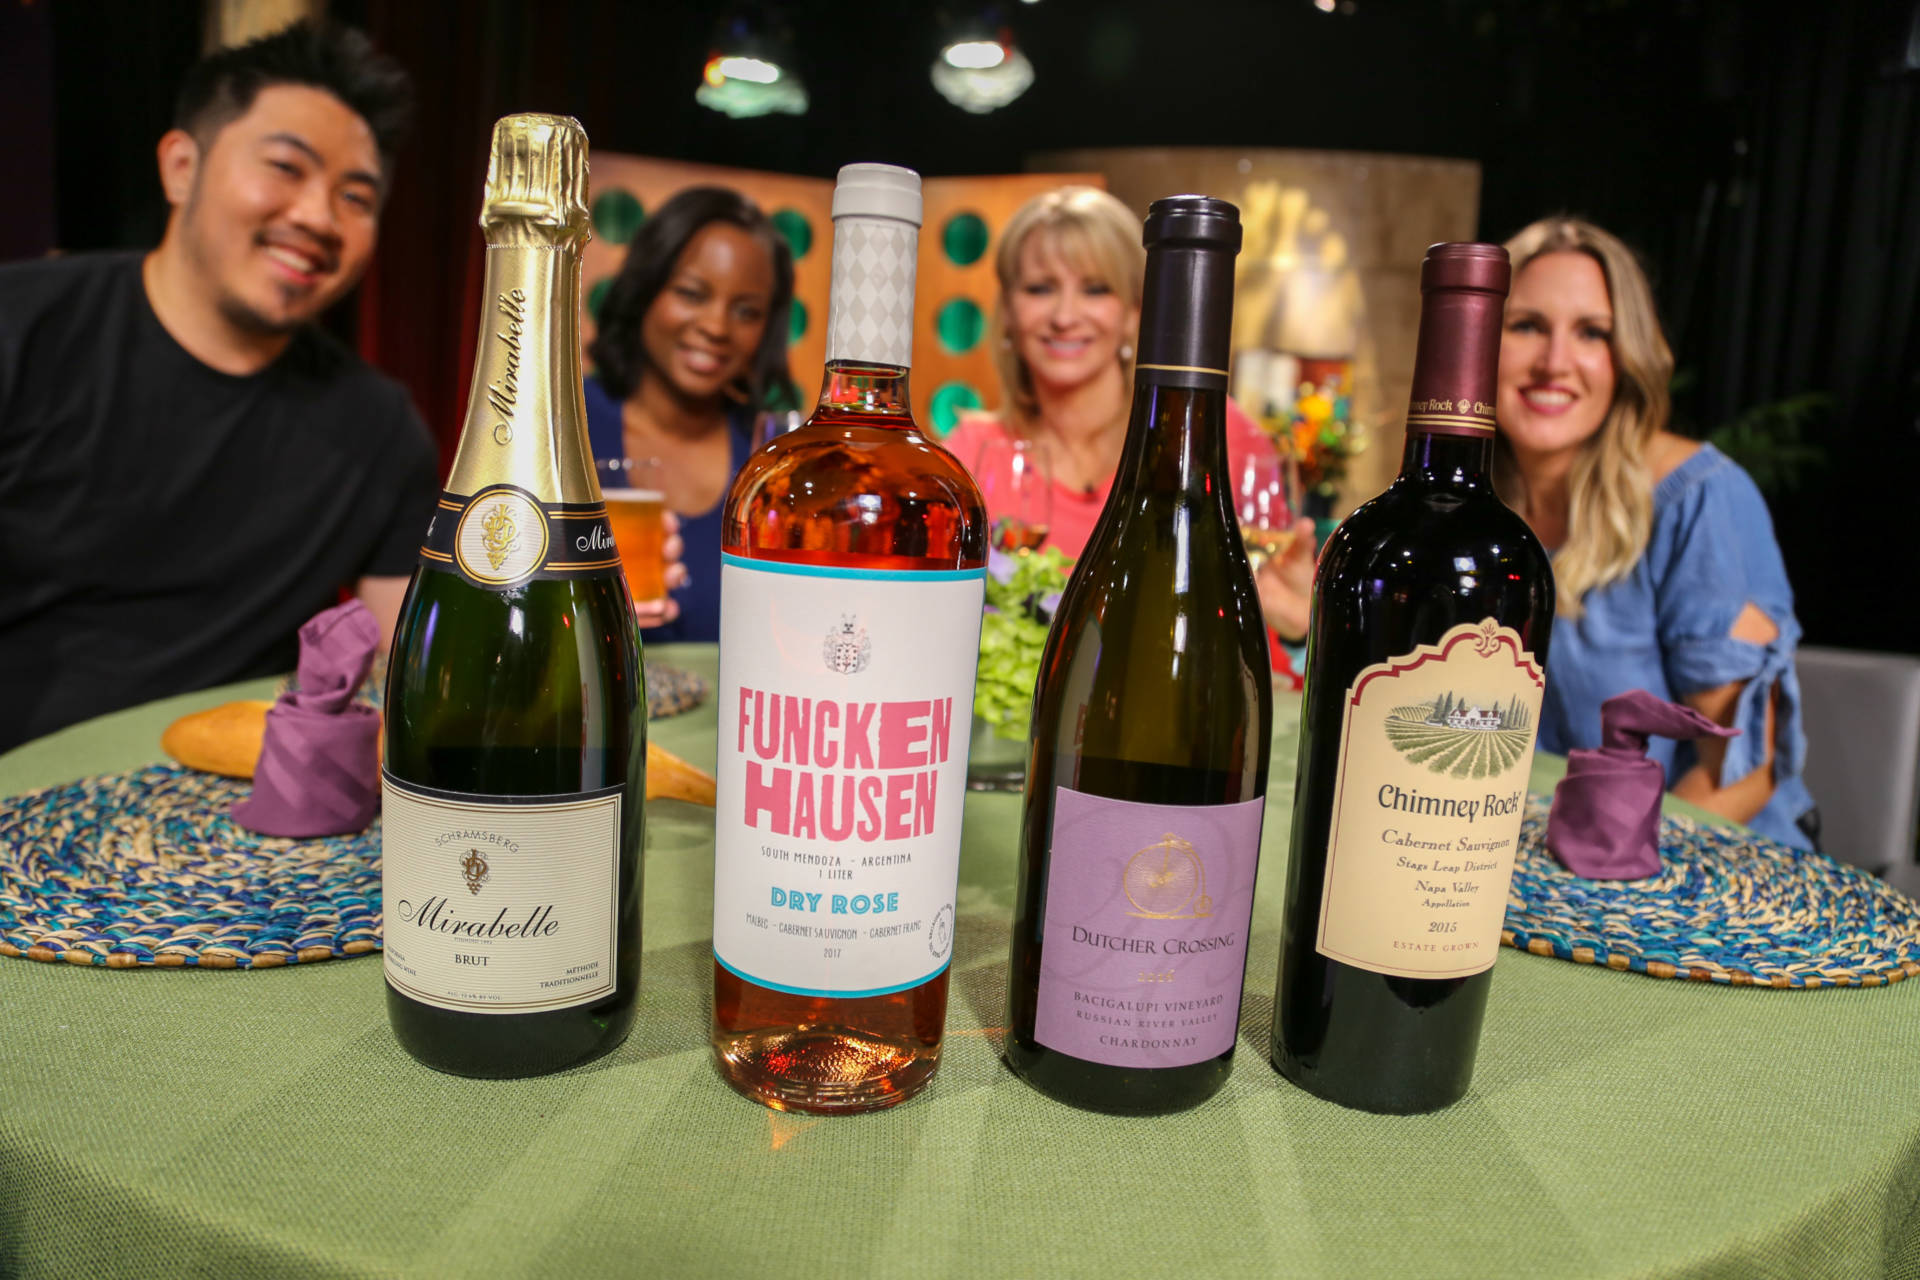 Wine that guests drank on the set of season 13 episode 12.